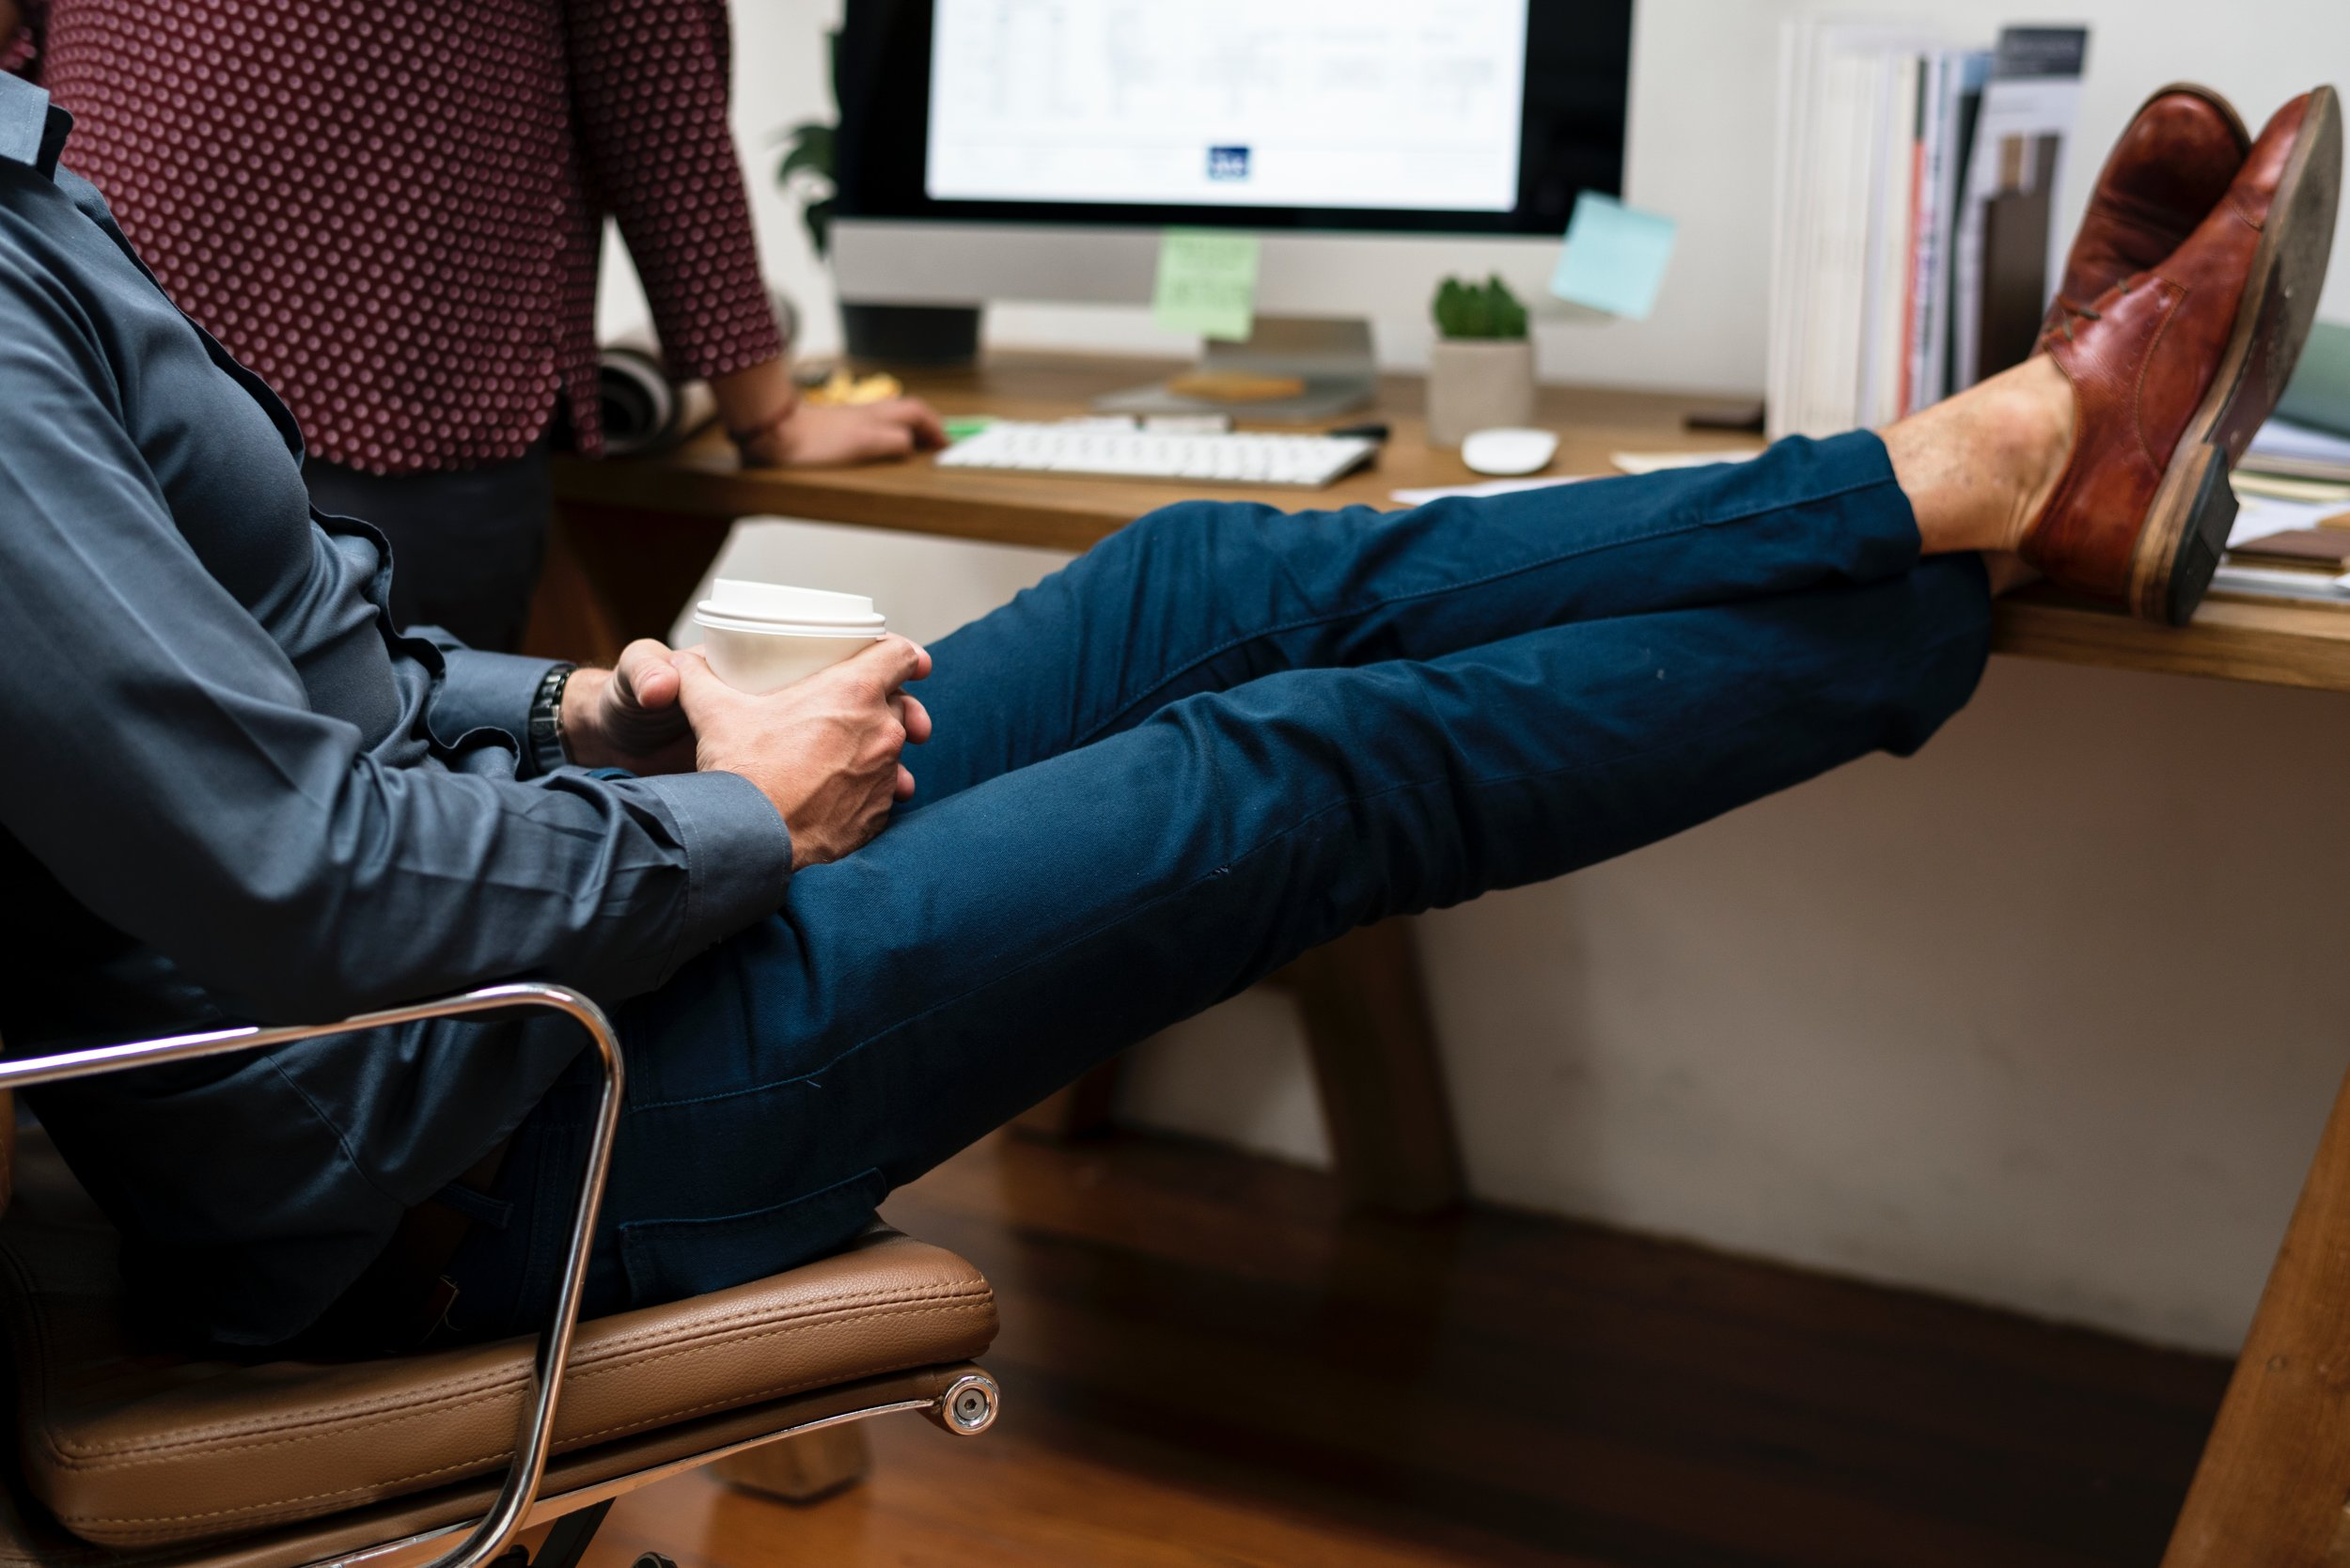 Is this you at your desk? Checking your posture regularly will bring you cognitive, psychological and physical benefits.